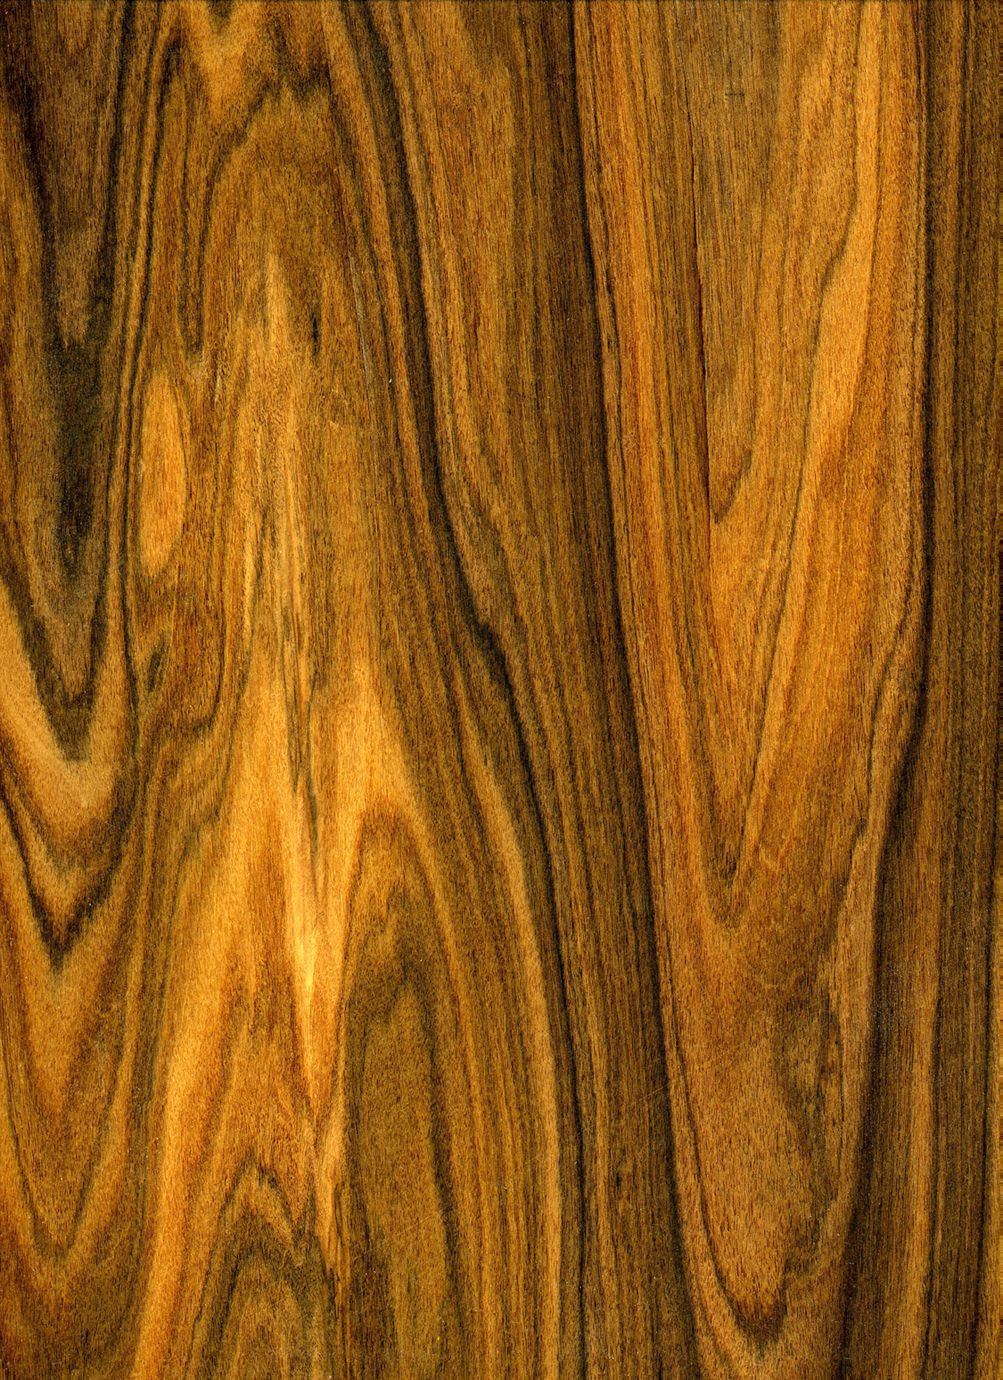 types of hardwood floors species of exotic lumber inc stocks over 130 species of exotic wood and regarding exotic lumber inc stocks over 130 species of exotic wood and domestic woods turning stock plywoods veneers boatbuilding lumber and offers millwork